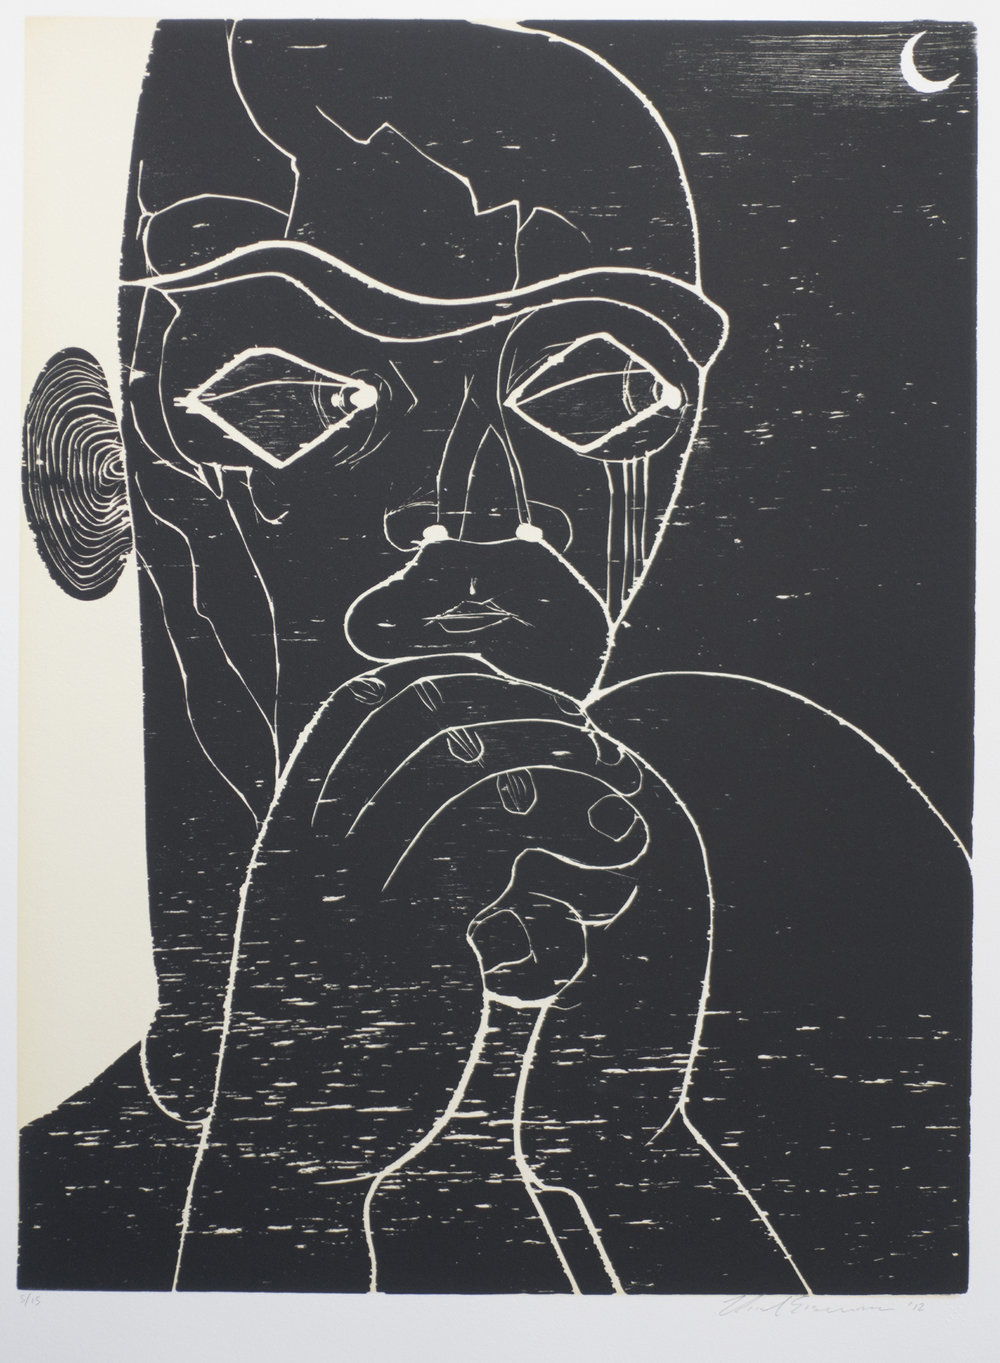 Untitled , 2012 Woodcut Image size: 23.75 x 17.75 inches Paper size: 29.125 x 23.125 inches Edition of 15